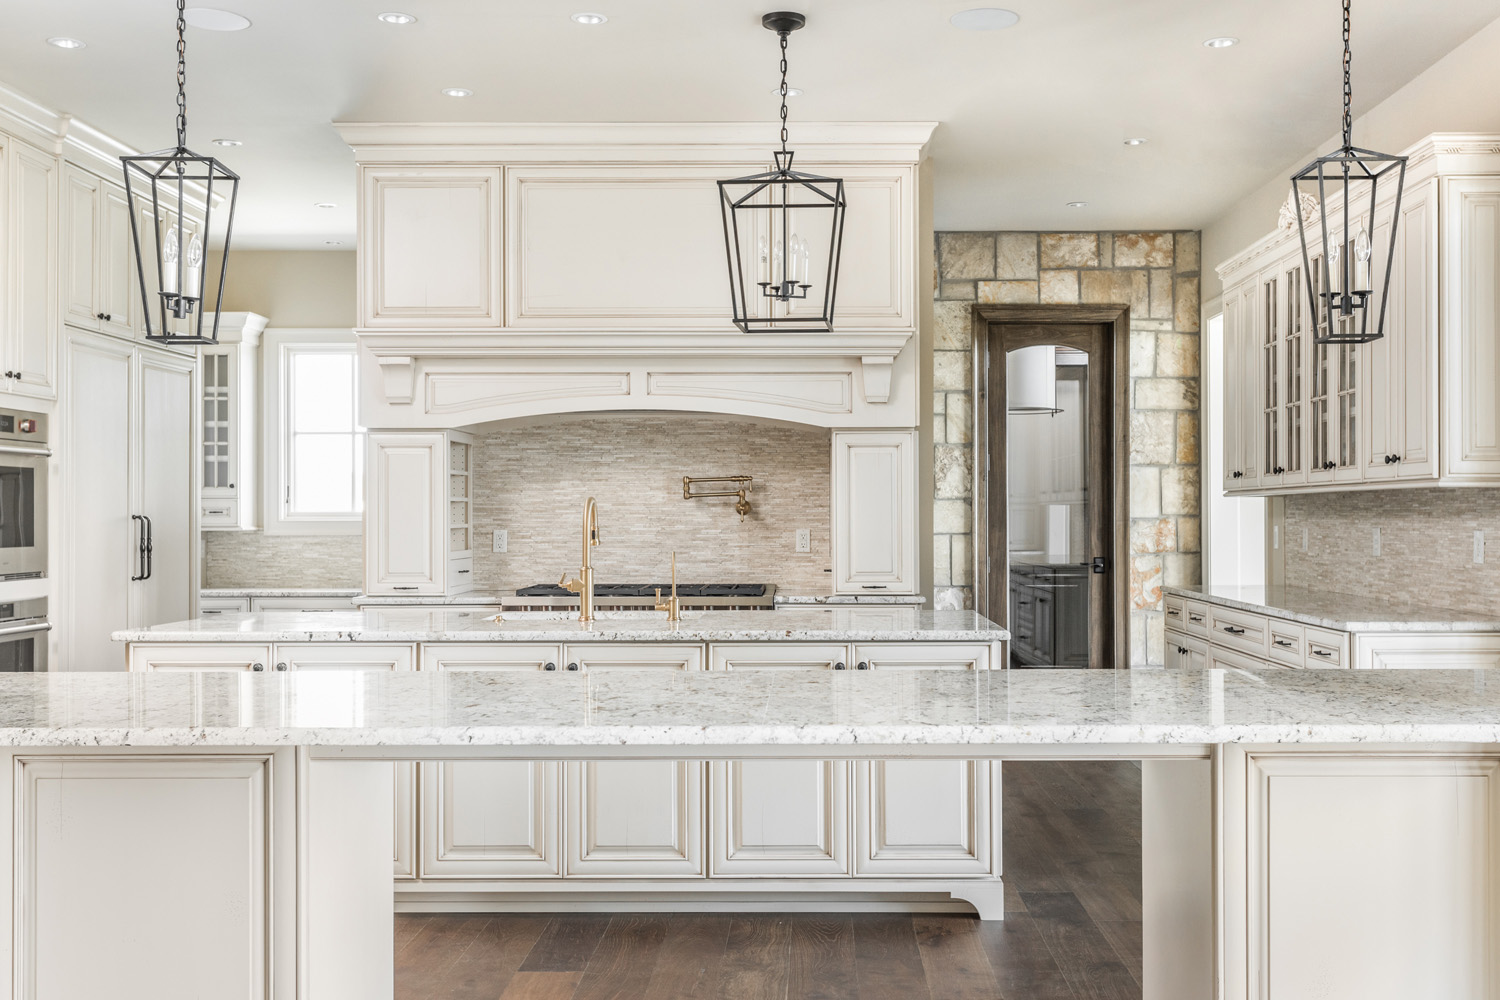 modern and traditional custom kitchen with stone countertops, wooden floors, white cabinetry, and pendant lighting